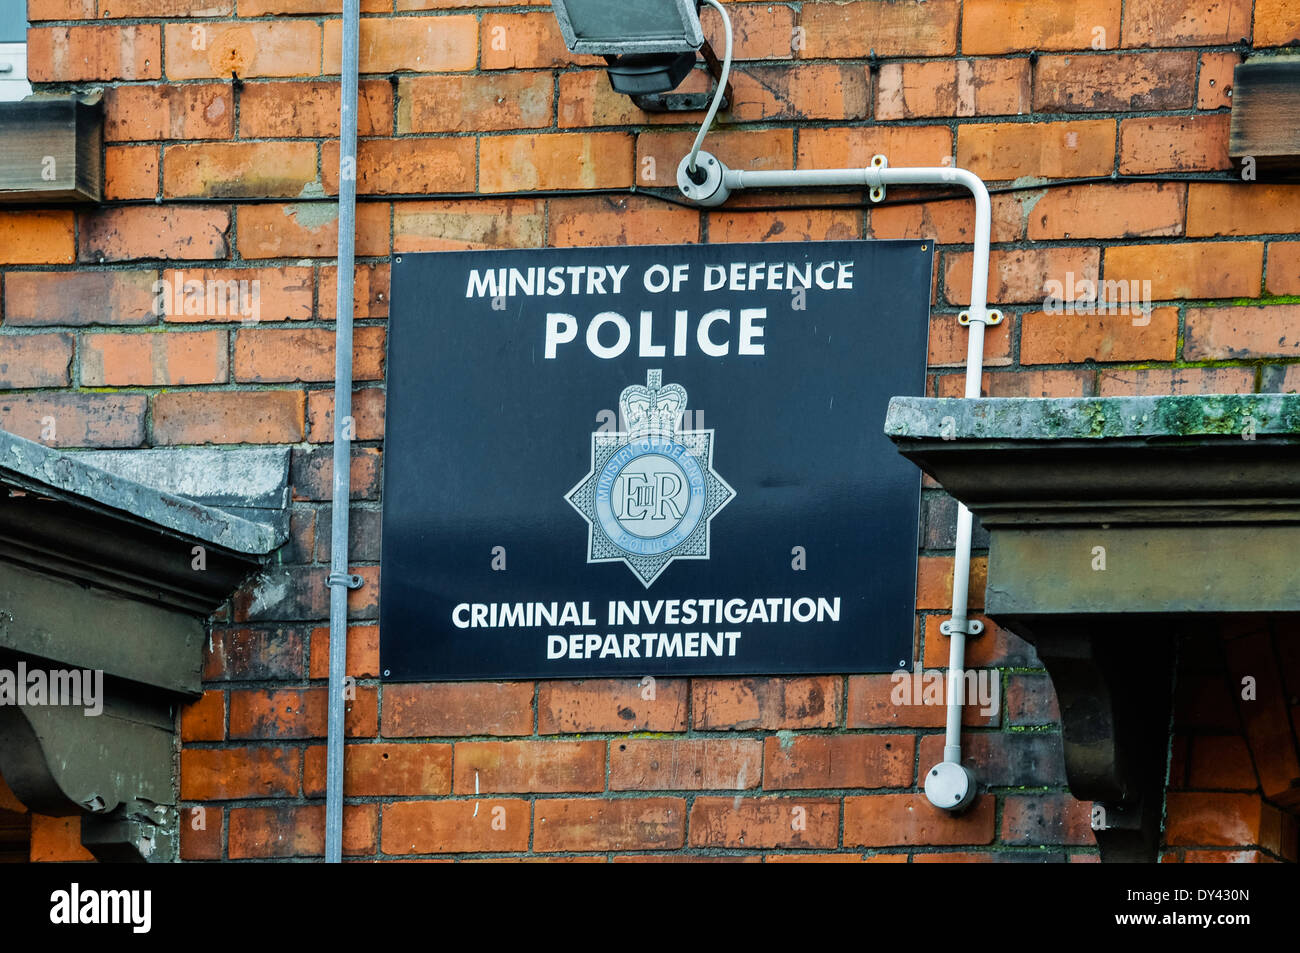 Sign at a Ministry of Defence Police Criminal Investigation Department - Stock Image